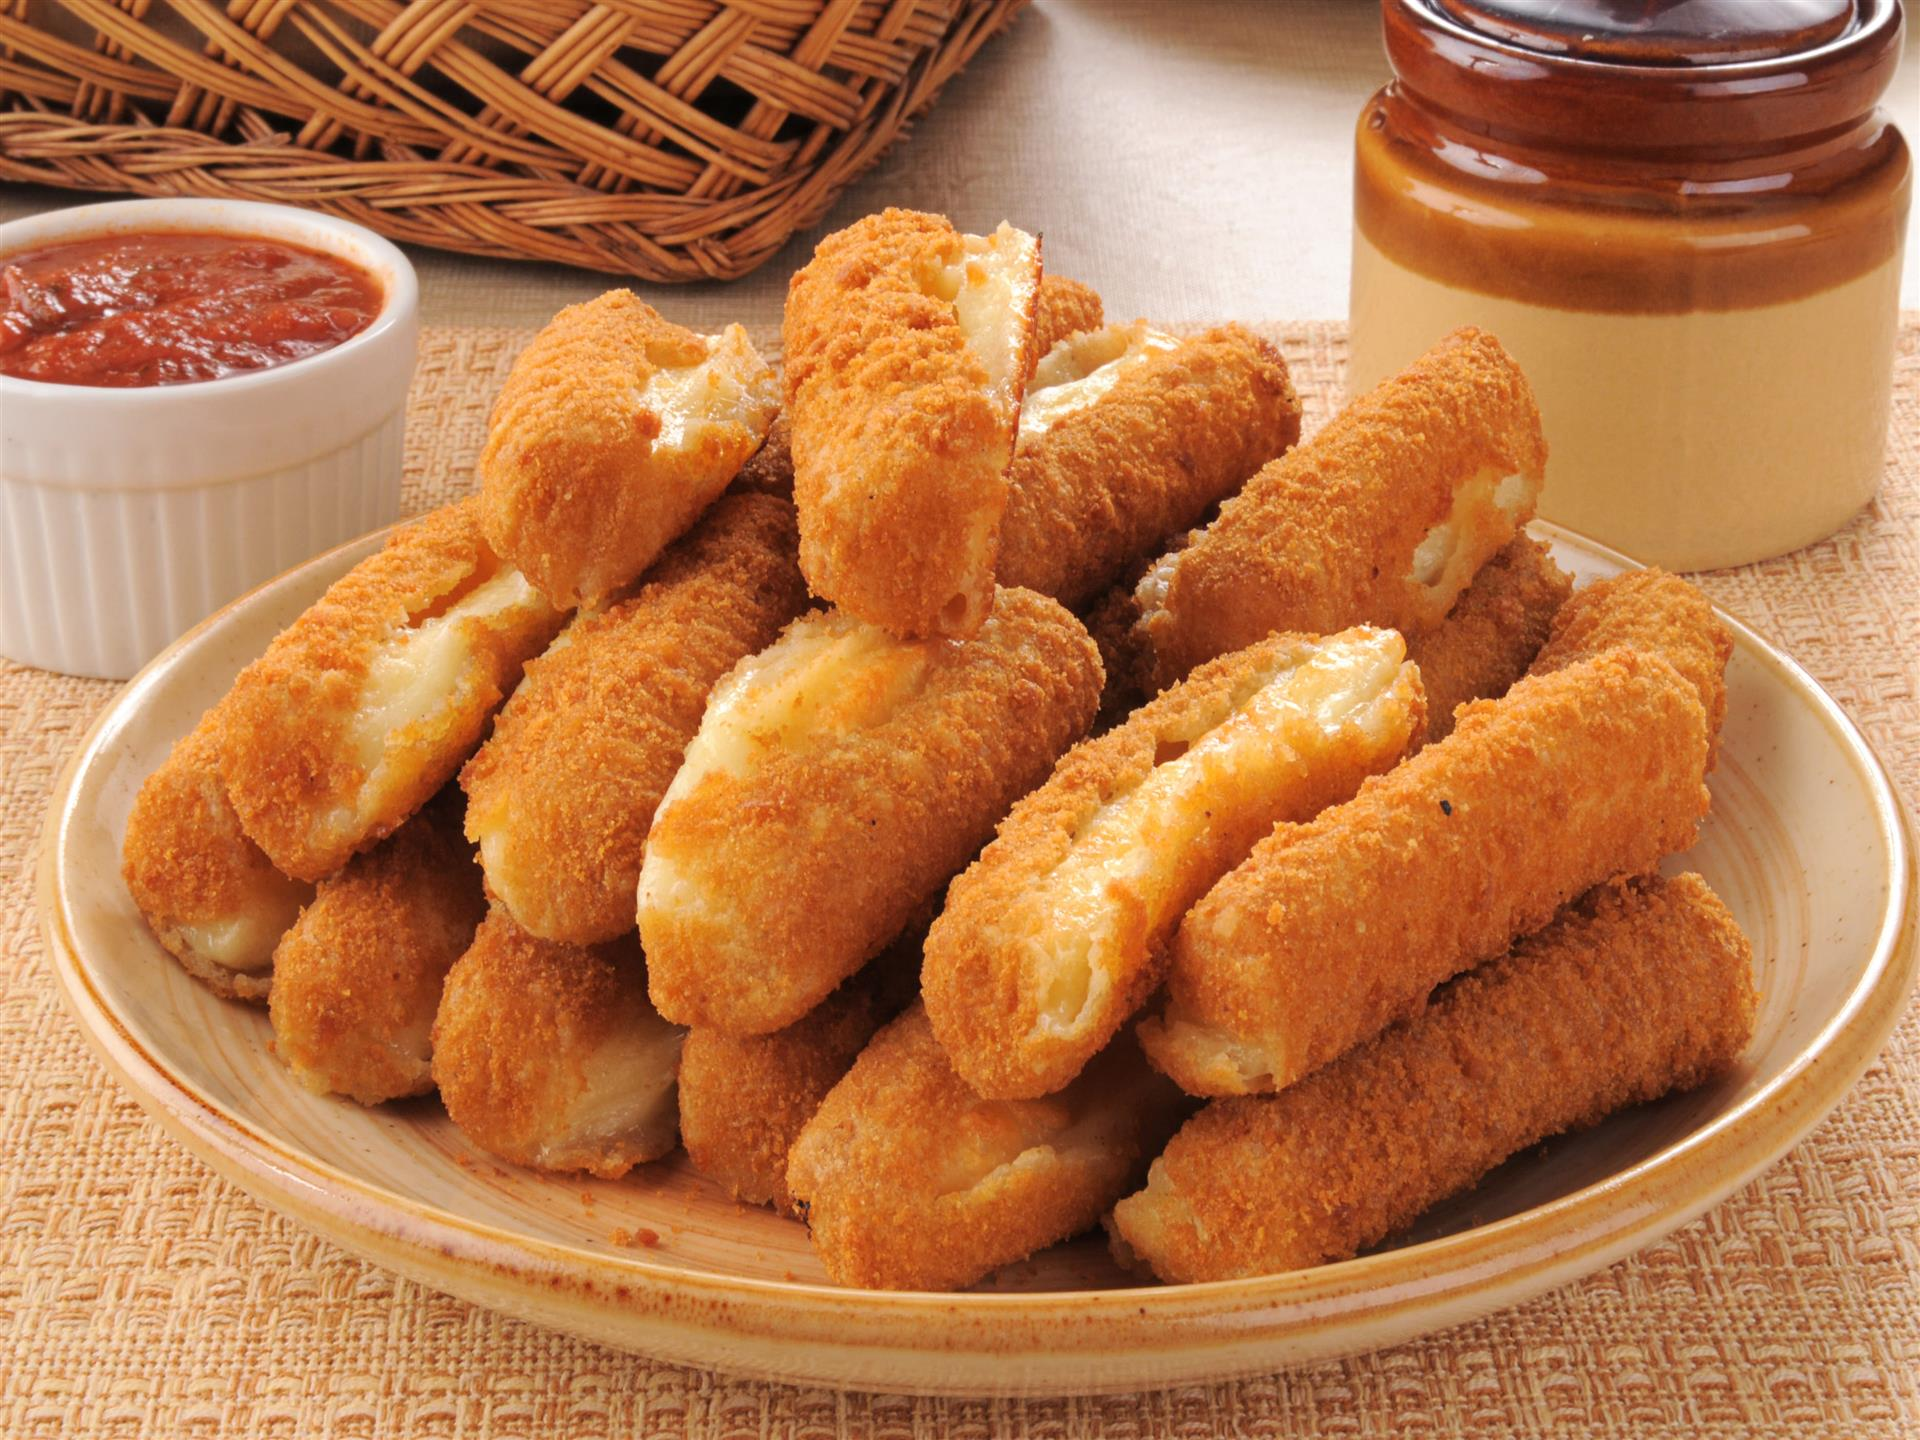 Mozzarella sticks with marinara